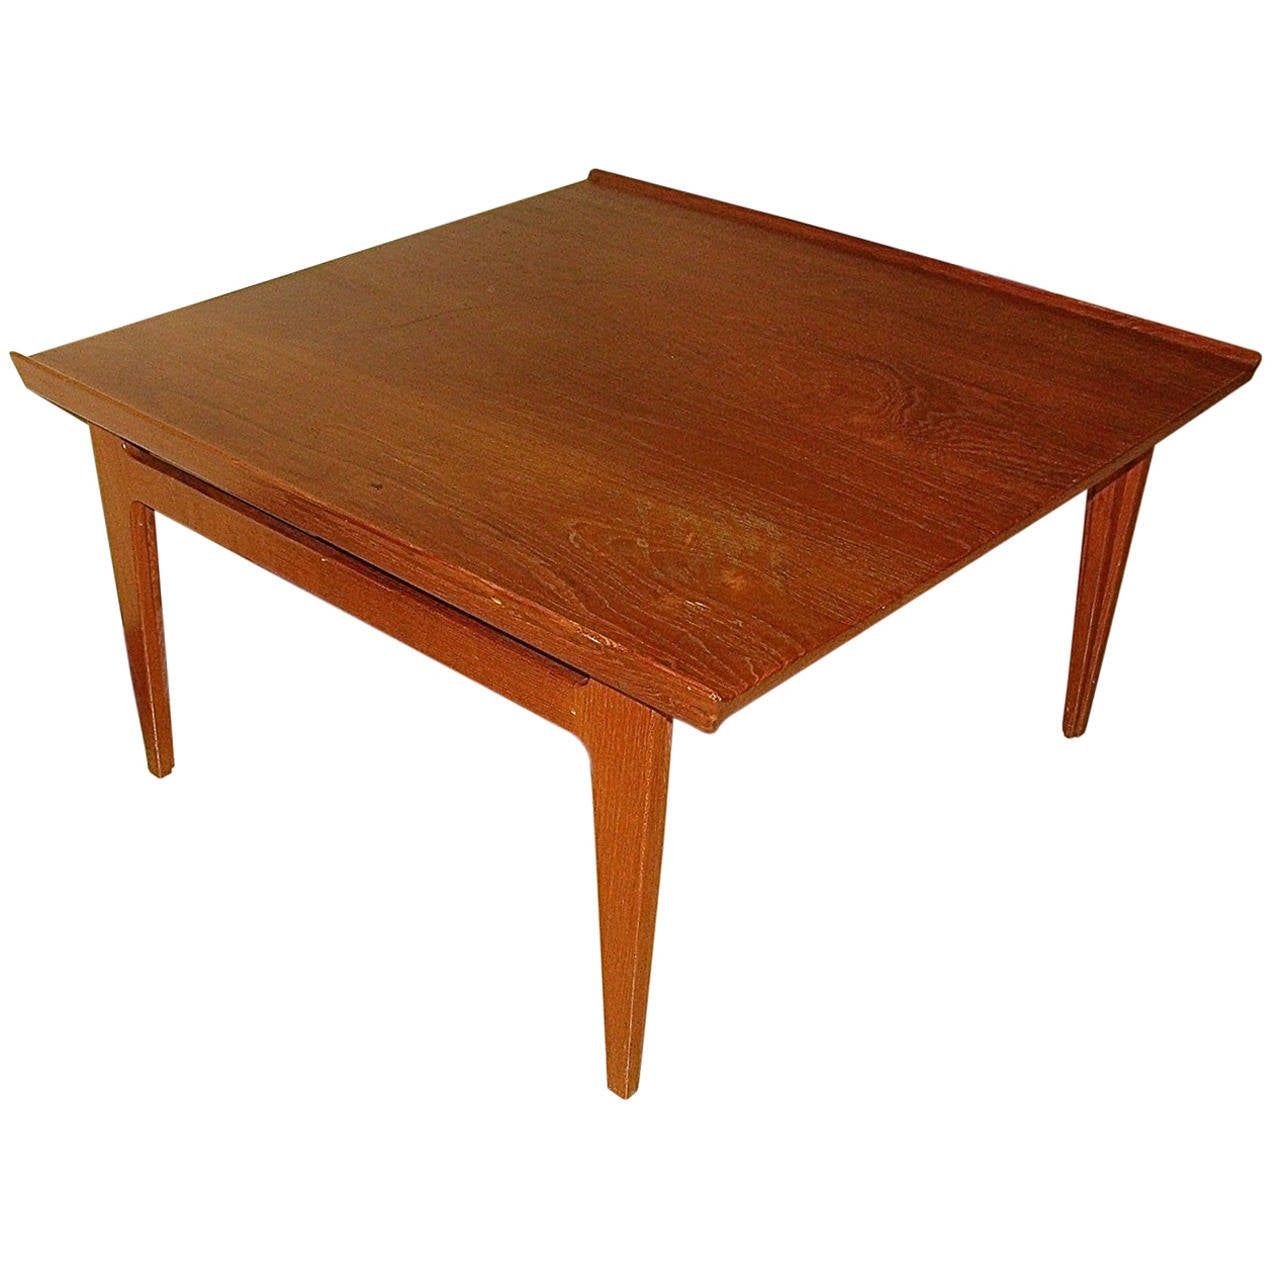 Finn juhl danish modern mid century coffee table at 1stdibs for Modern coffee table